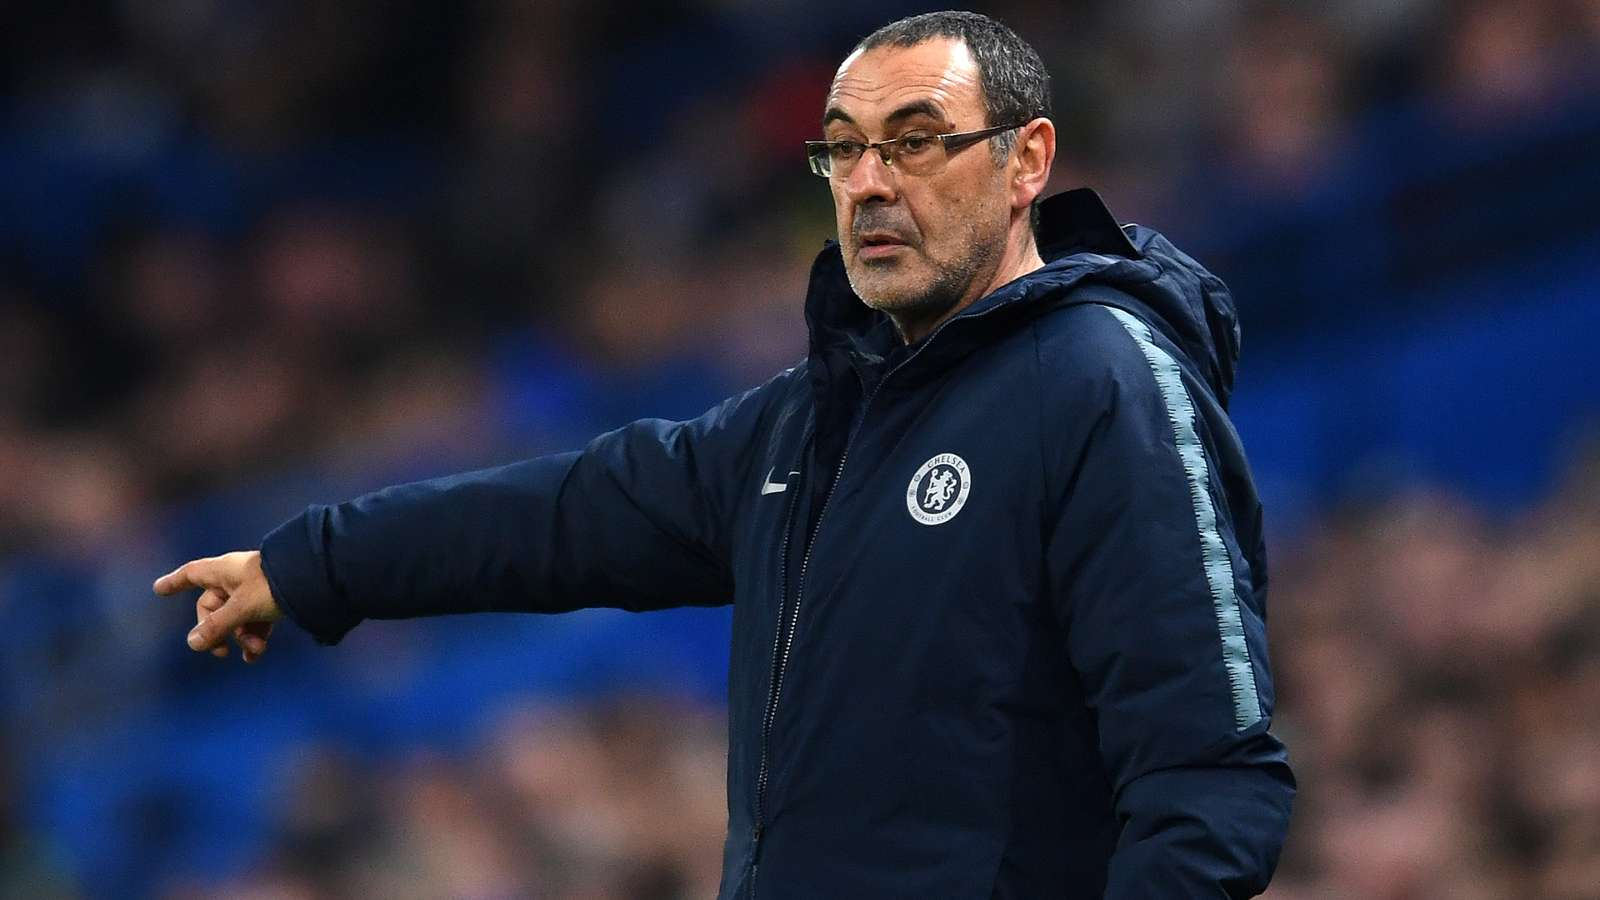 Maurizio Sarri raises fears over Chelsea fatigue ahead of Europa League final against Arsenal - Bóng Đá